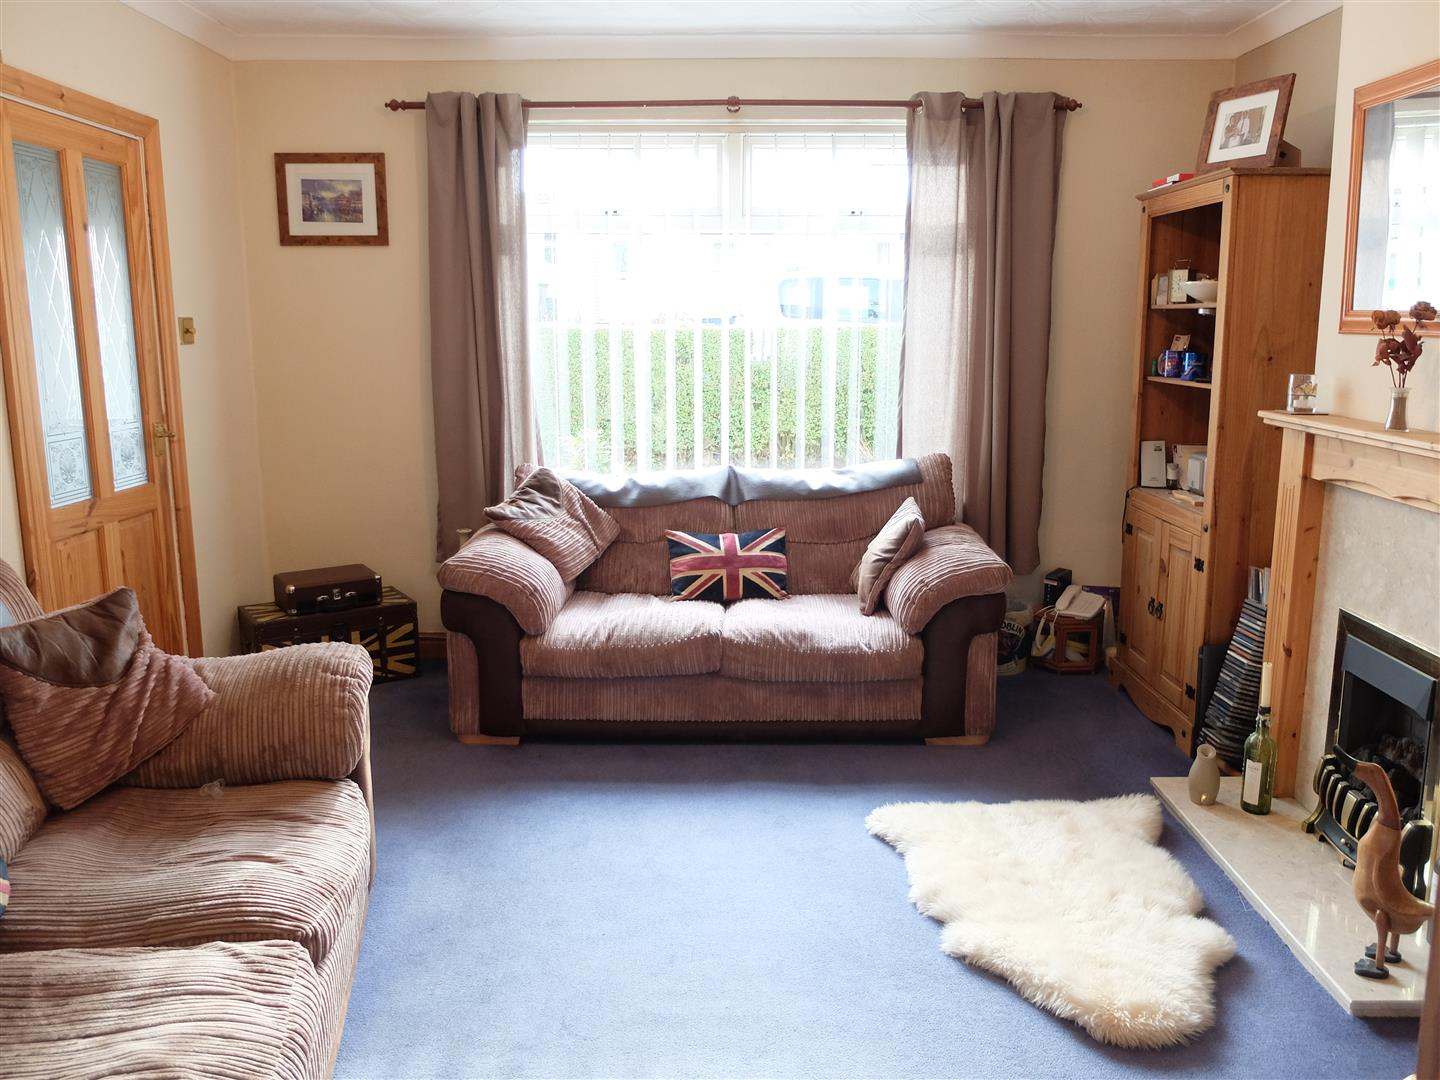 3 Bedrooms House - Semi-Detached For Sale 71 Bracken Ridge Carlisle